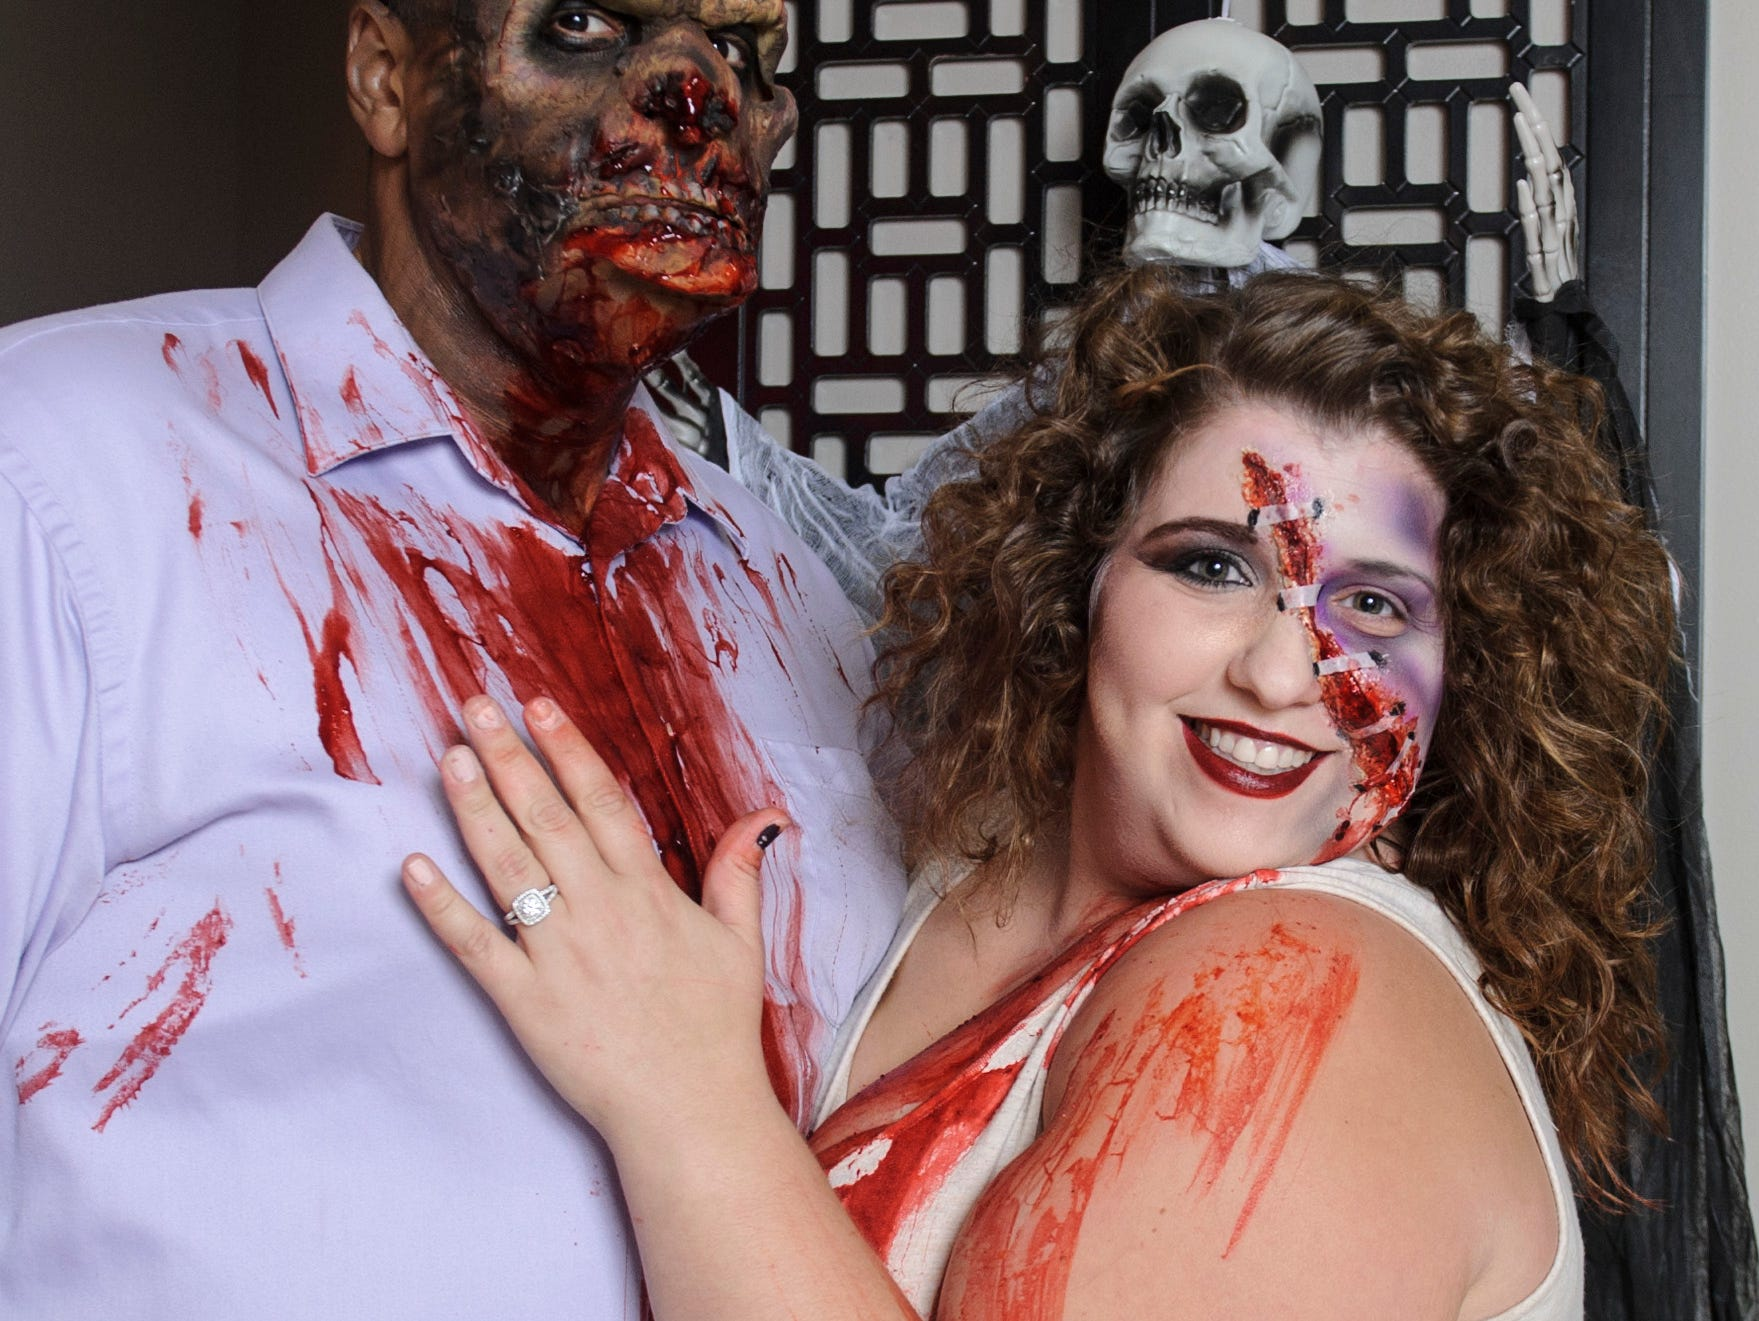 Andrew Woods and Laura Braslow at the Zombie Prom on Saturday, Oct. 20, 2018.